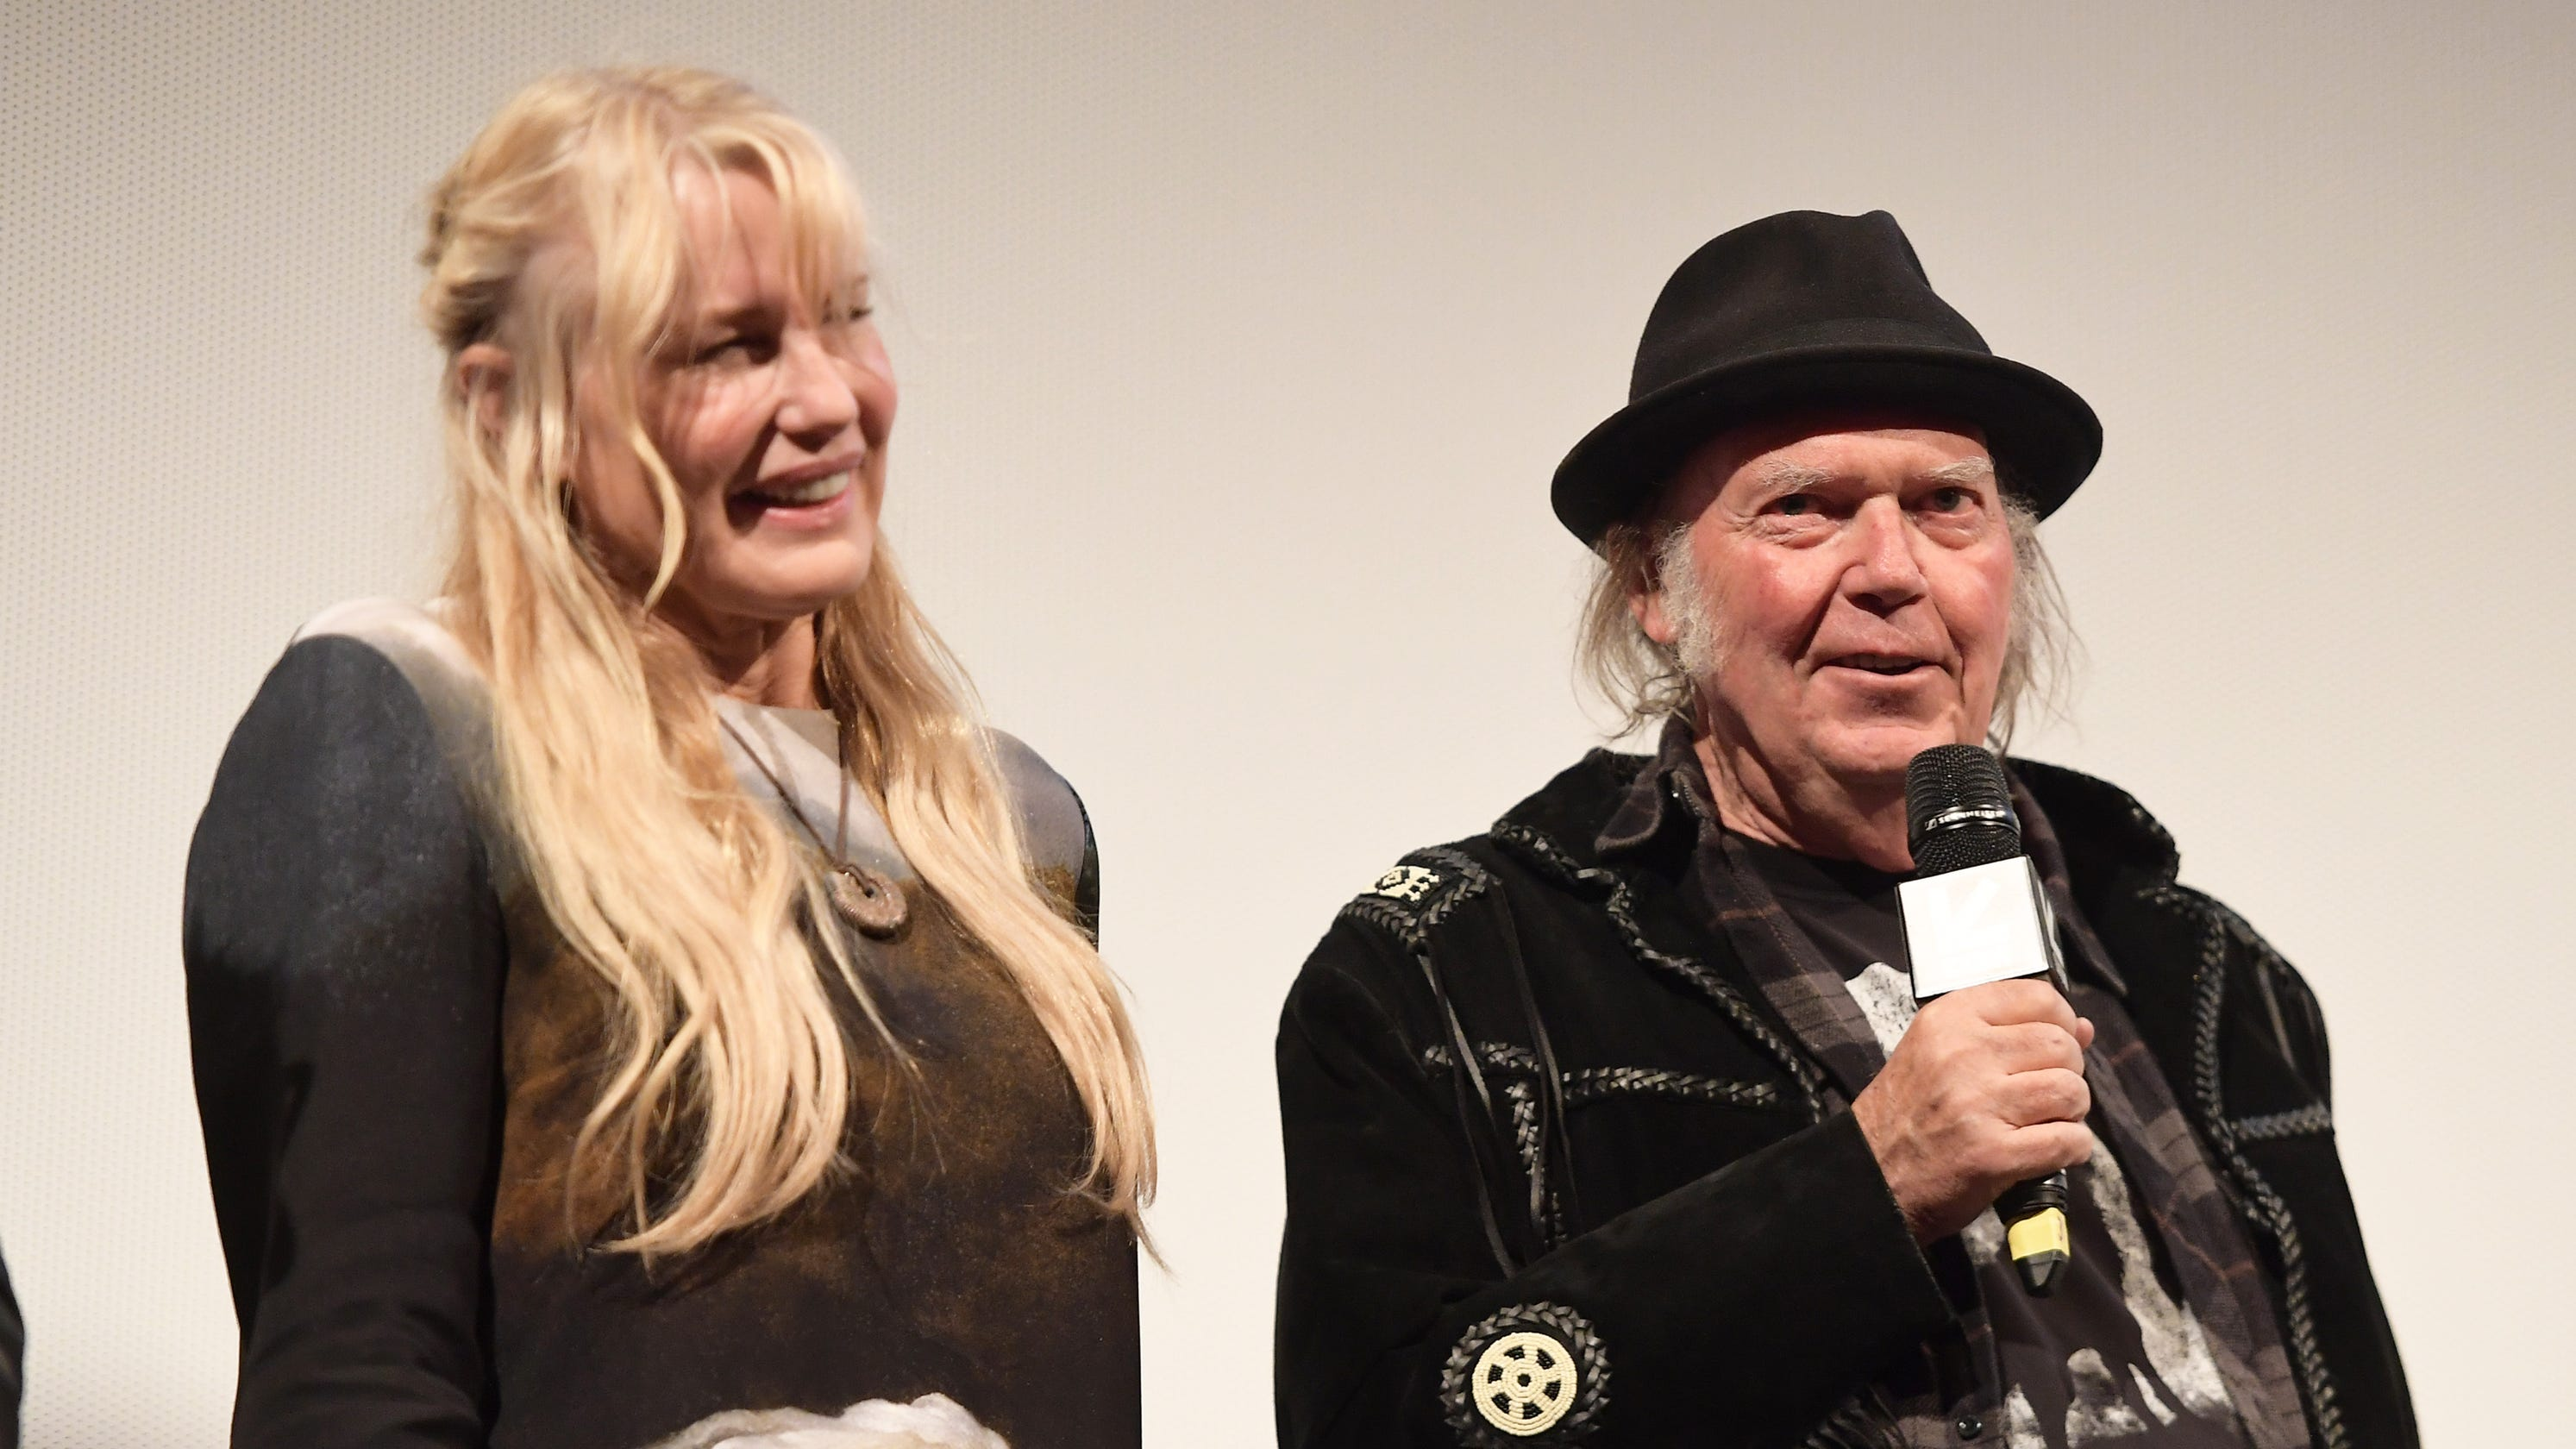 Neil Young And Daryl Hannah Got Married After All